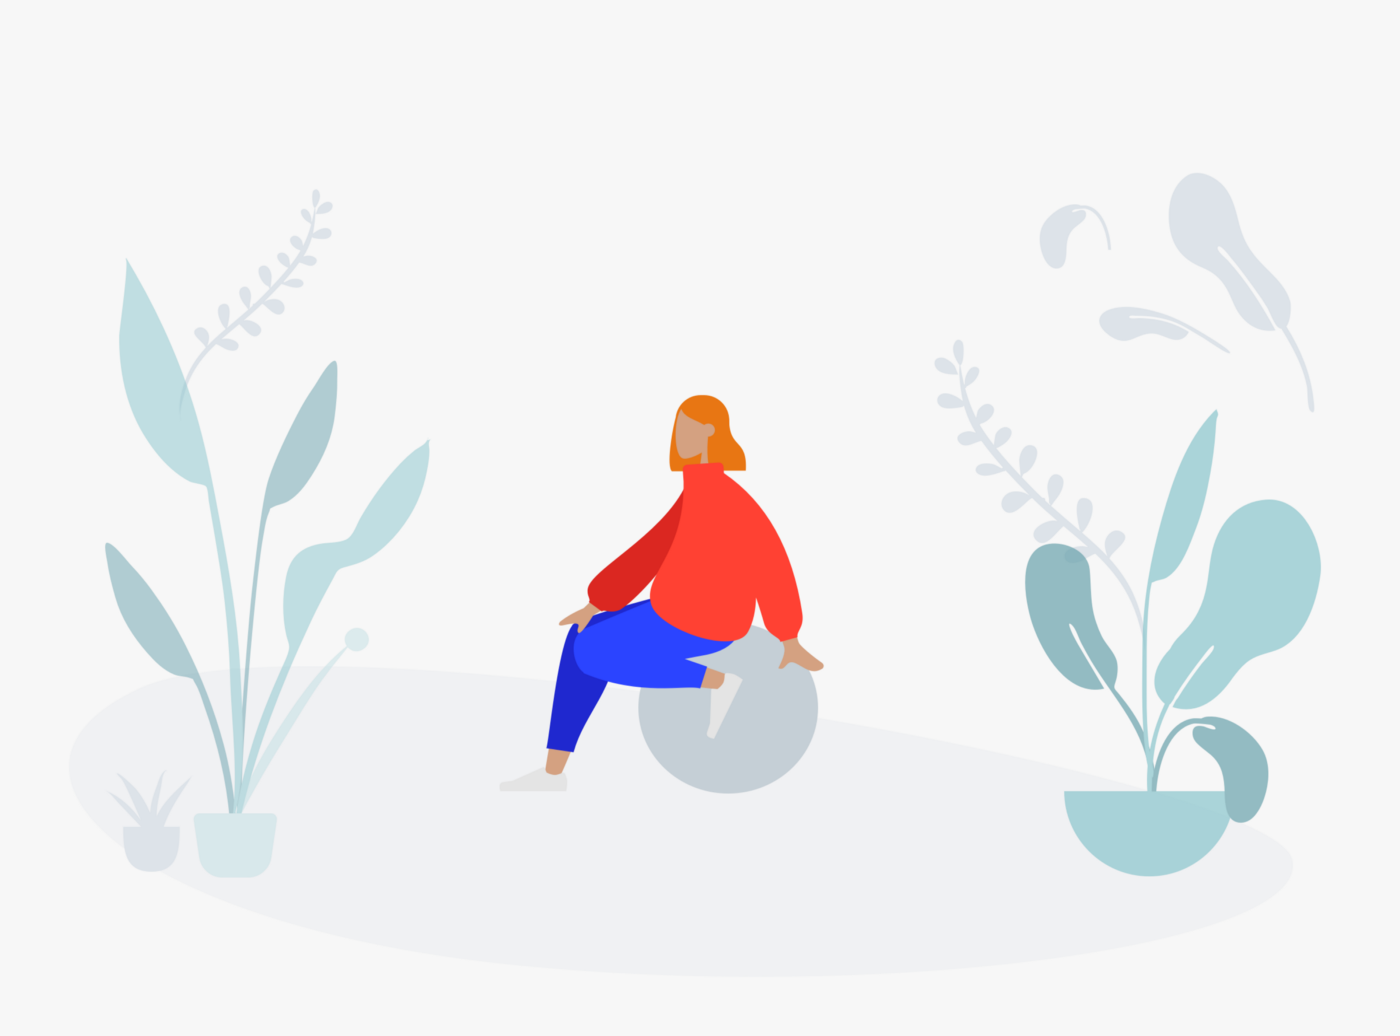 Illustration showing someone sat along on a rock within nature